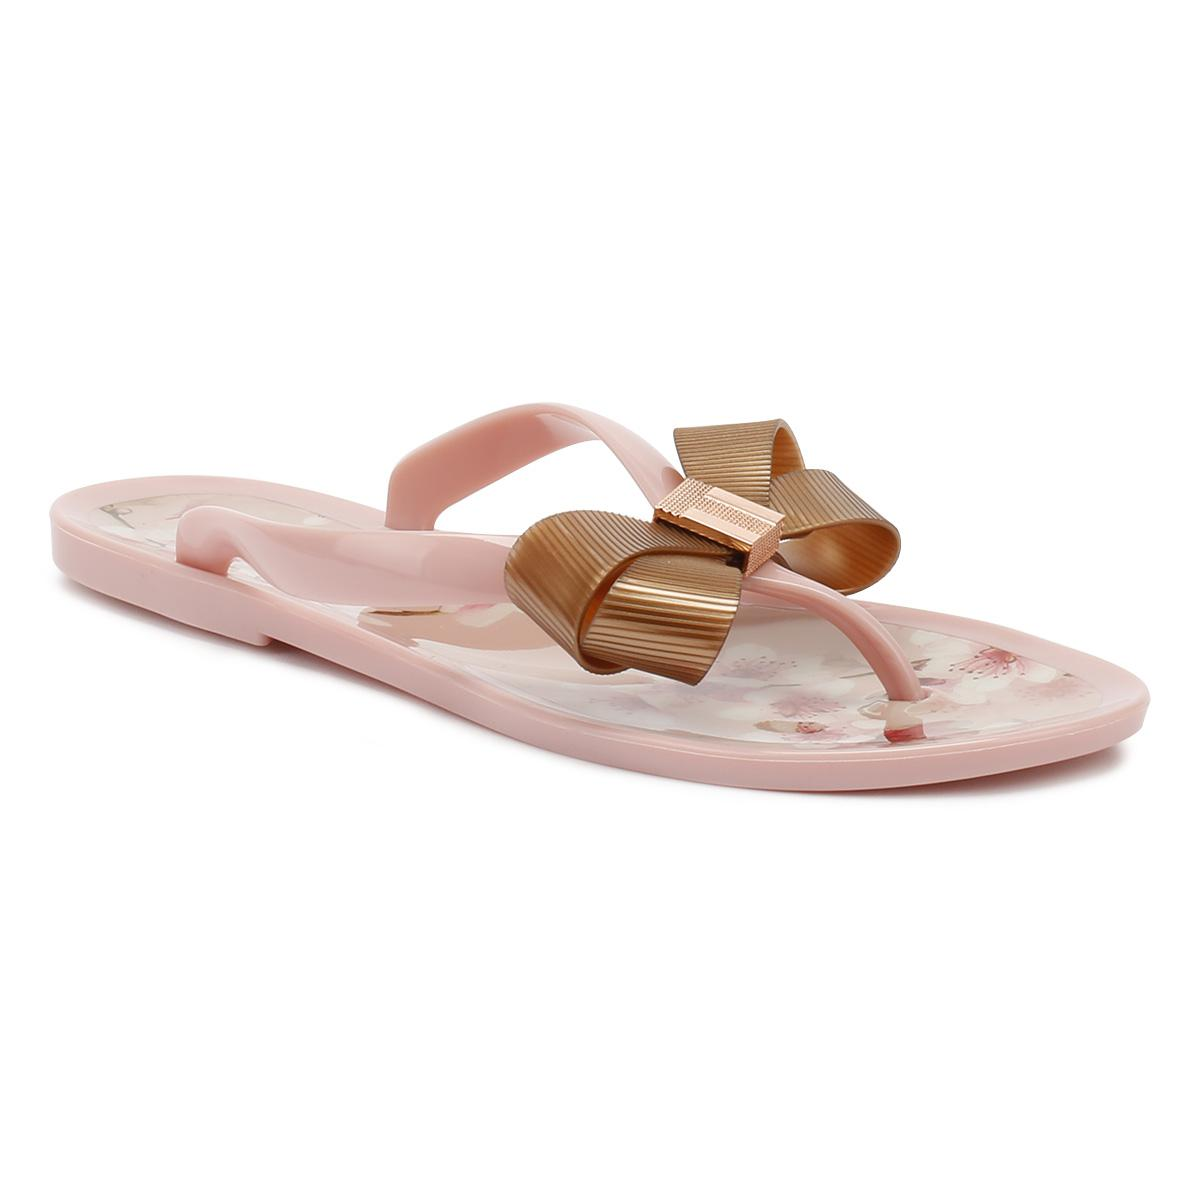 bf7b6eae4 Ted Baker Womens Blossom Pink Susziep Flip Flops in Pink - Lyst